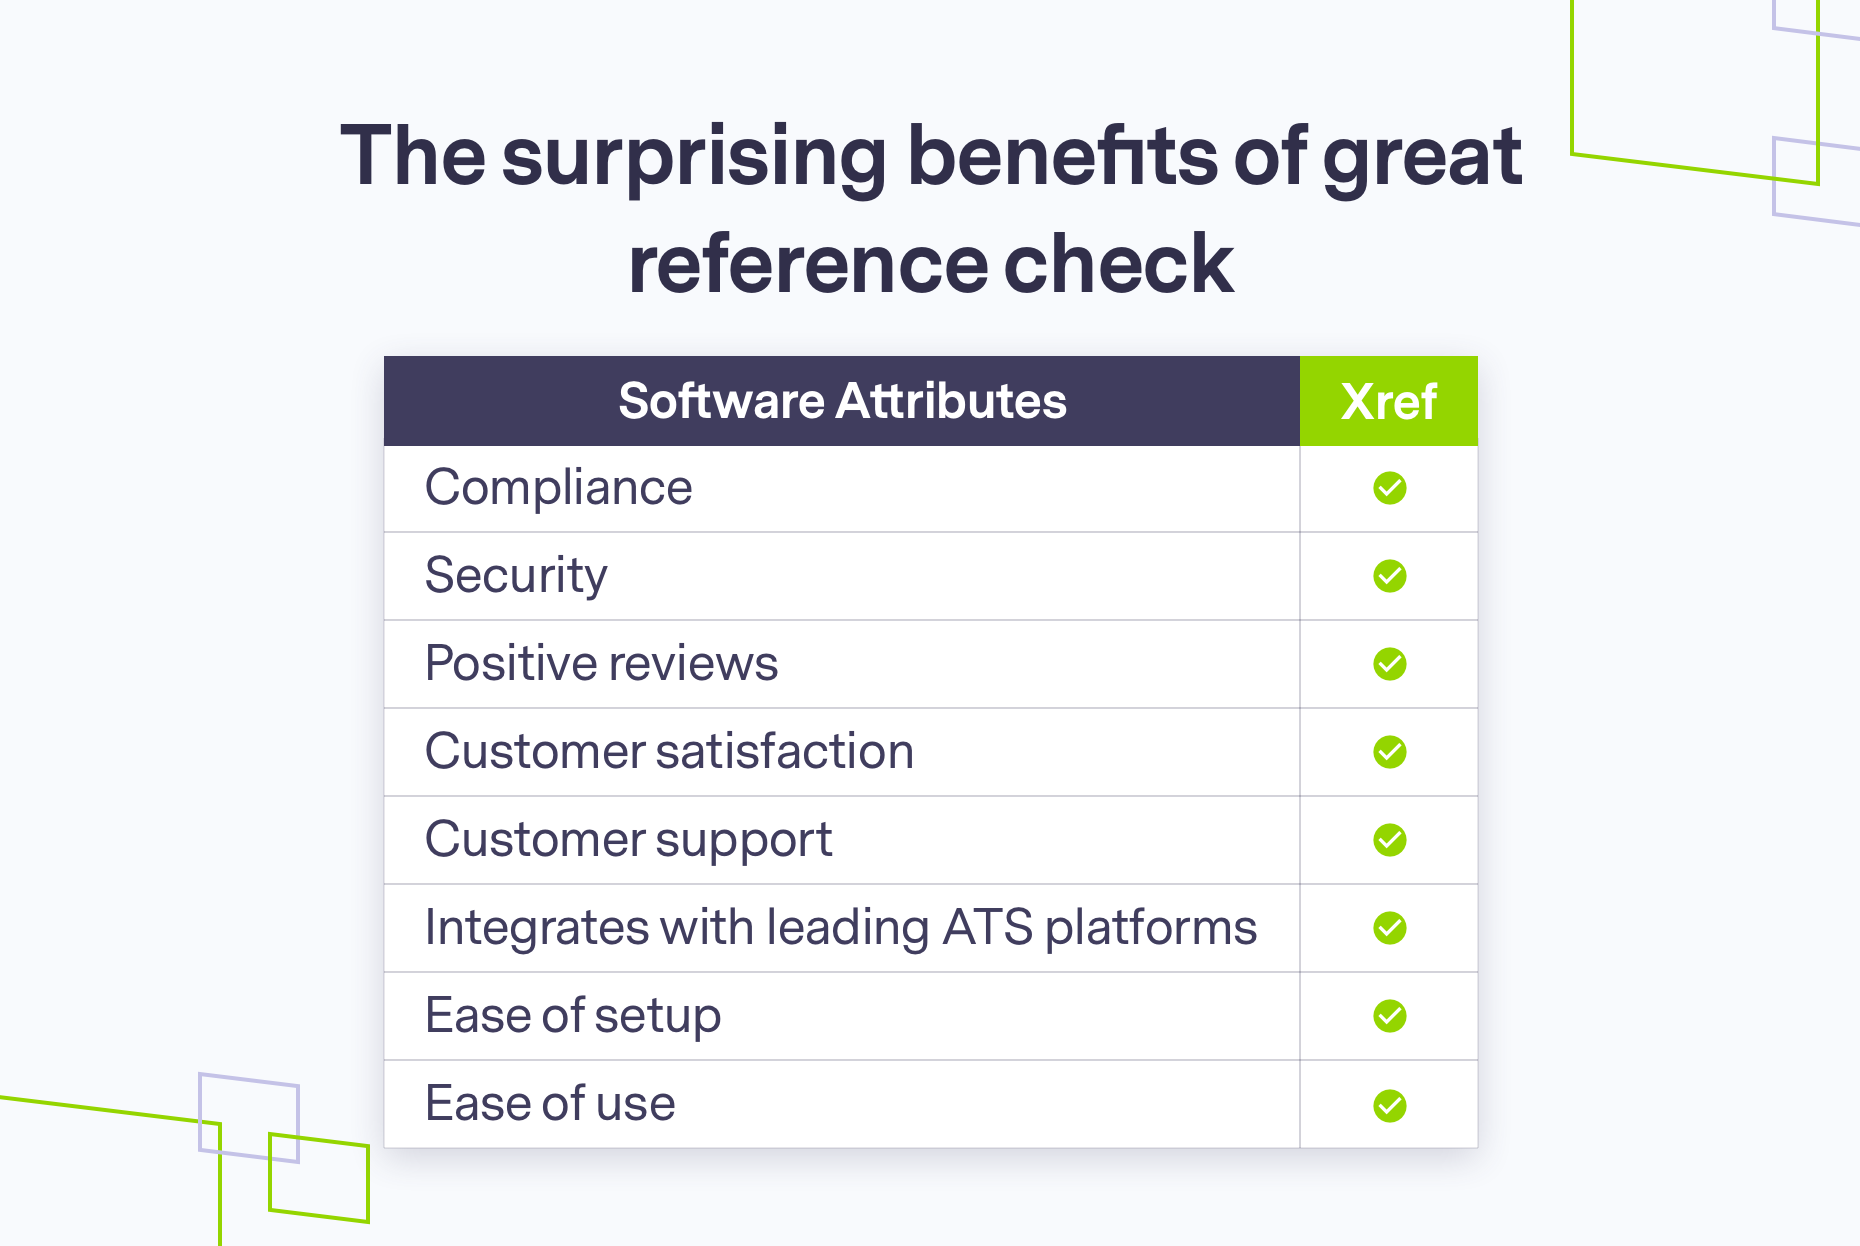 Reference check benefits list, brand shapes on grey